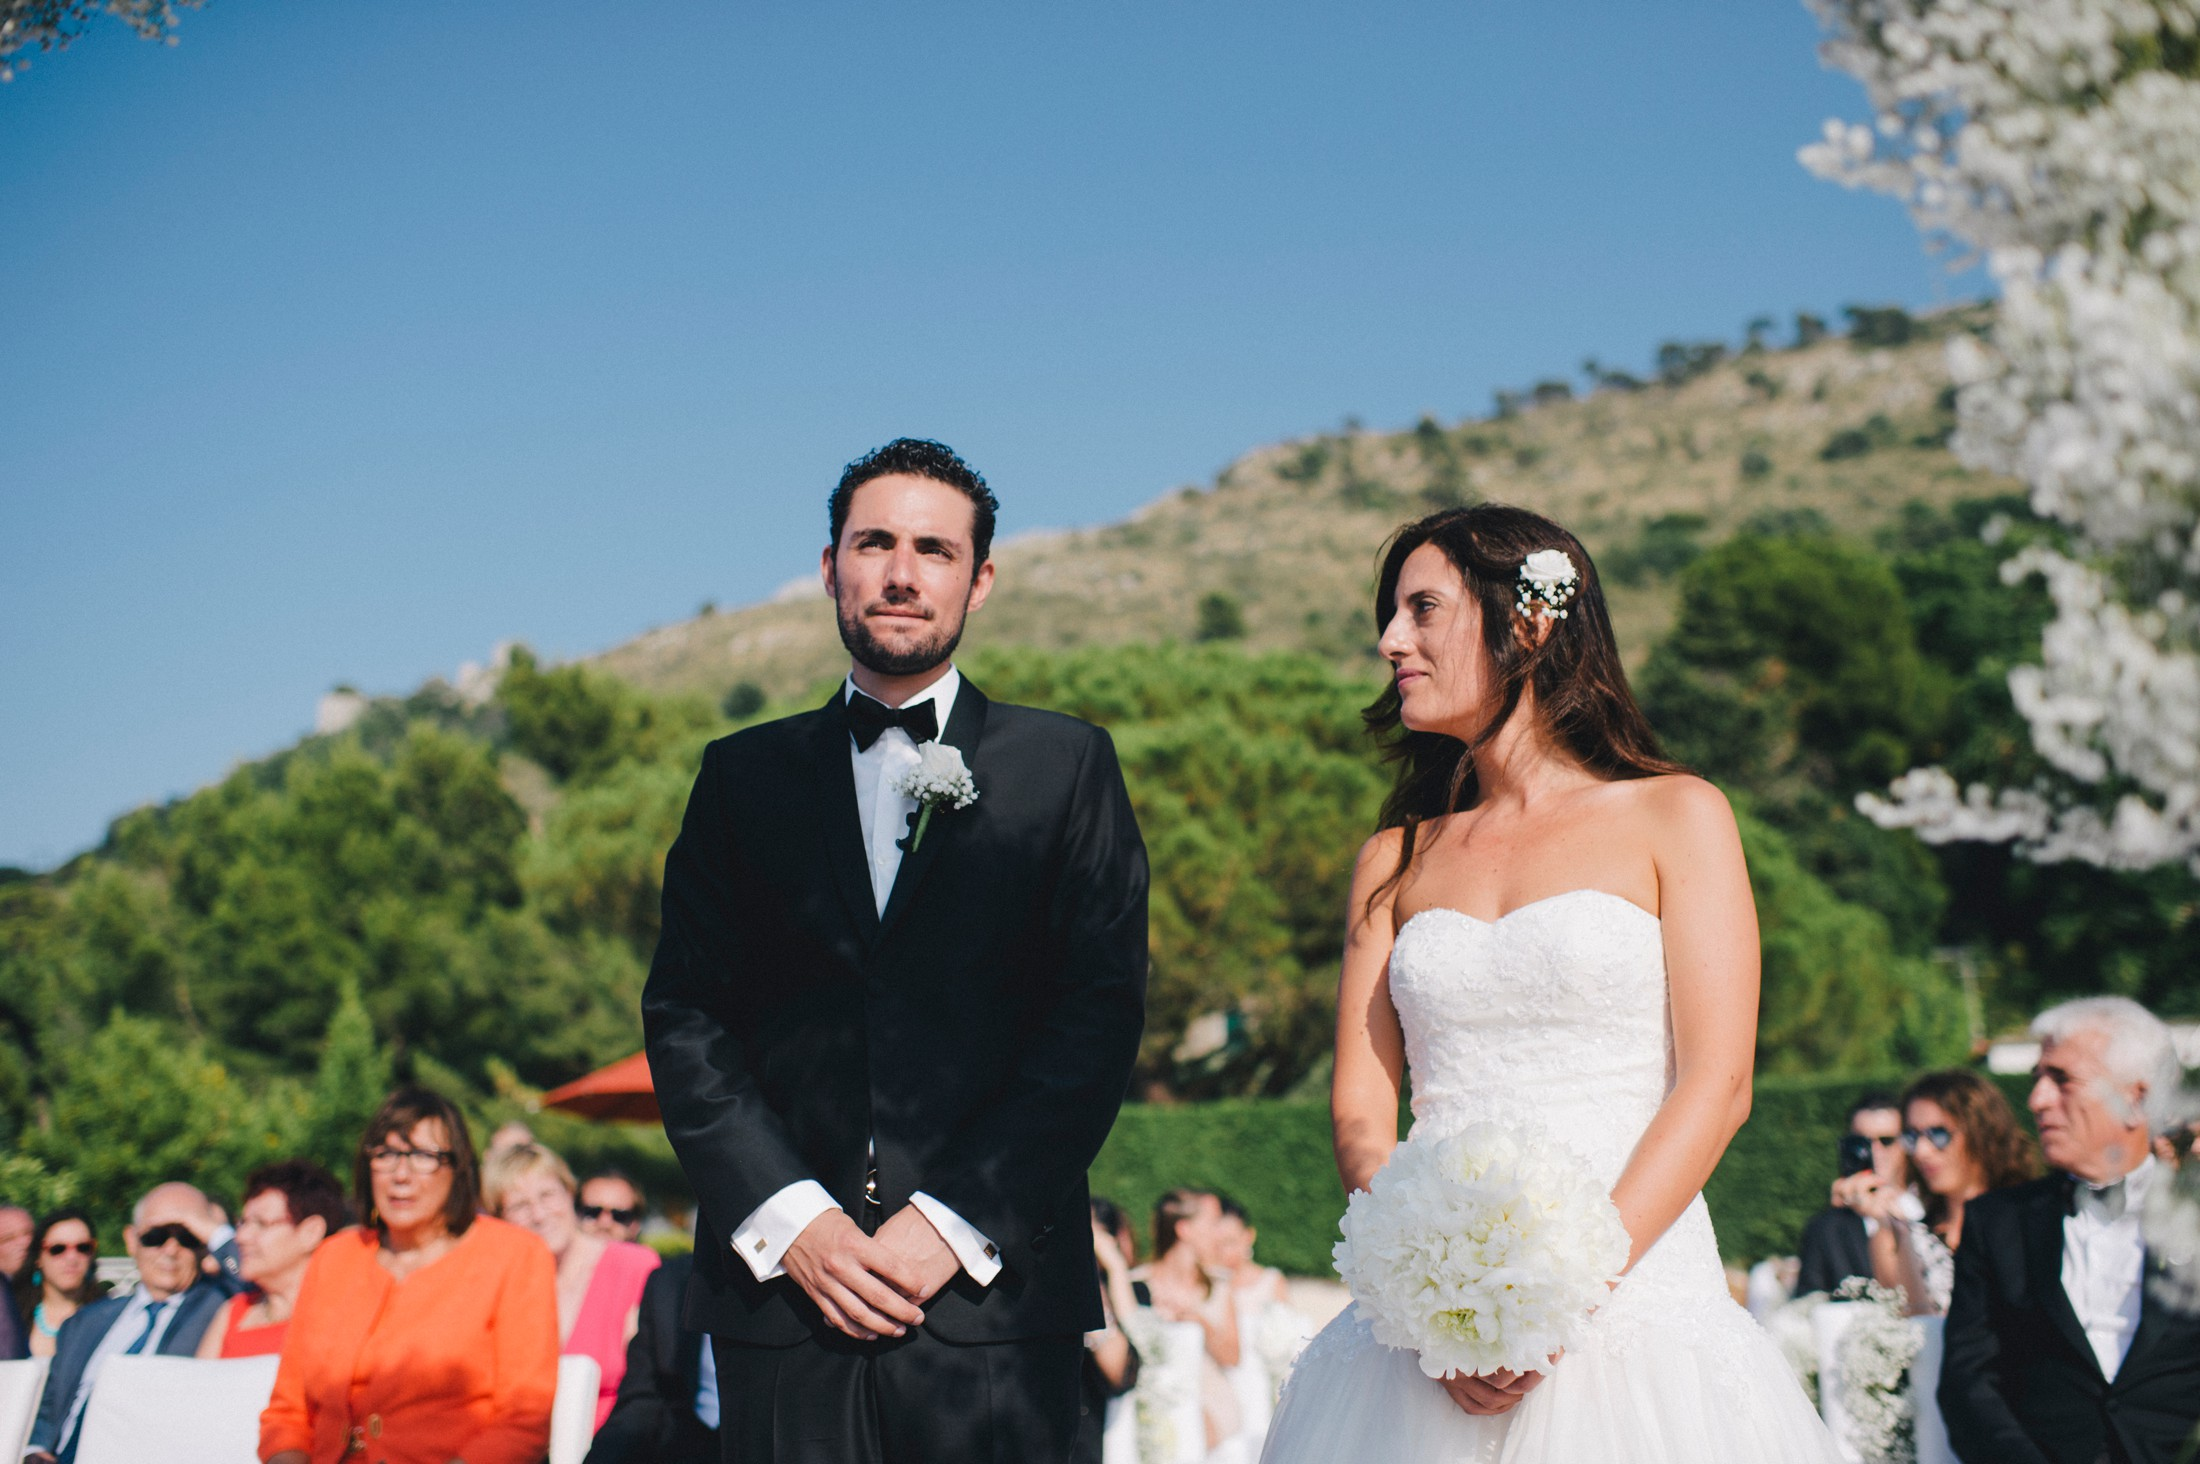 bride and groom during the wedding ceremony